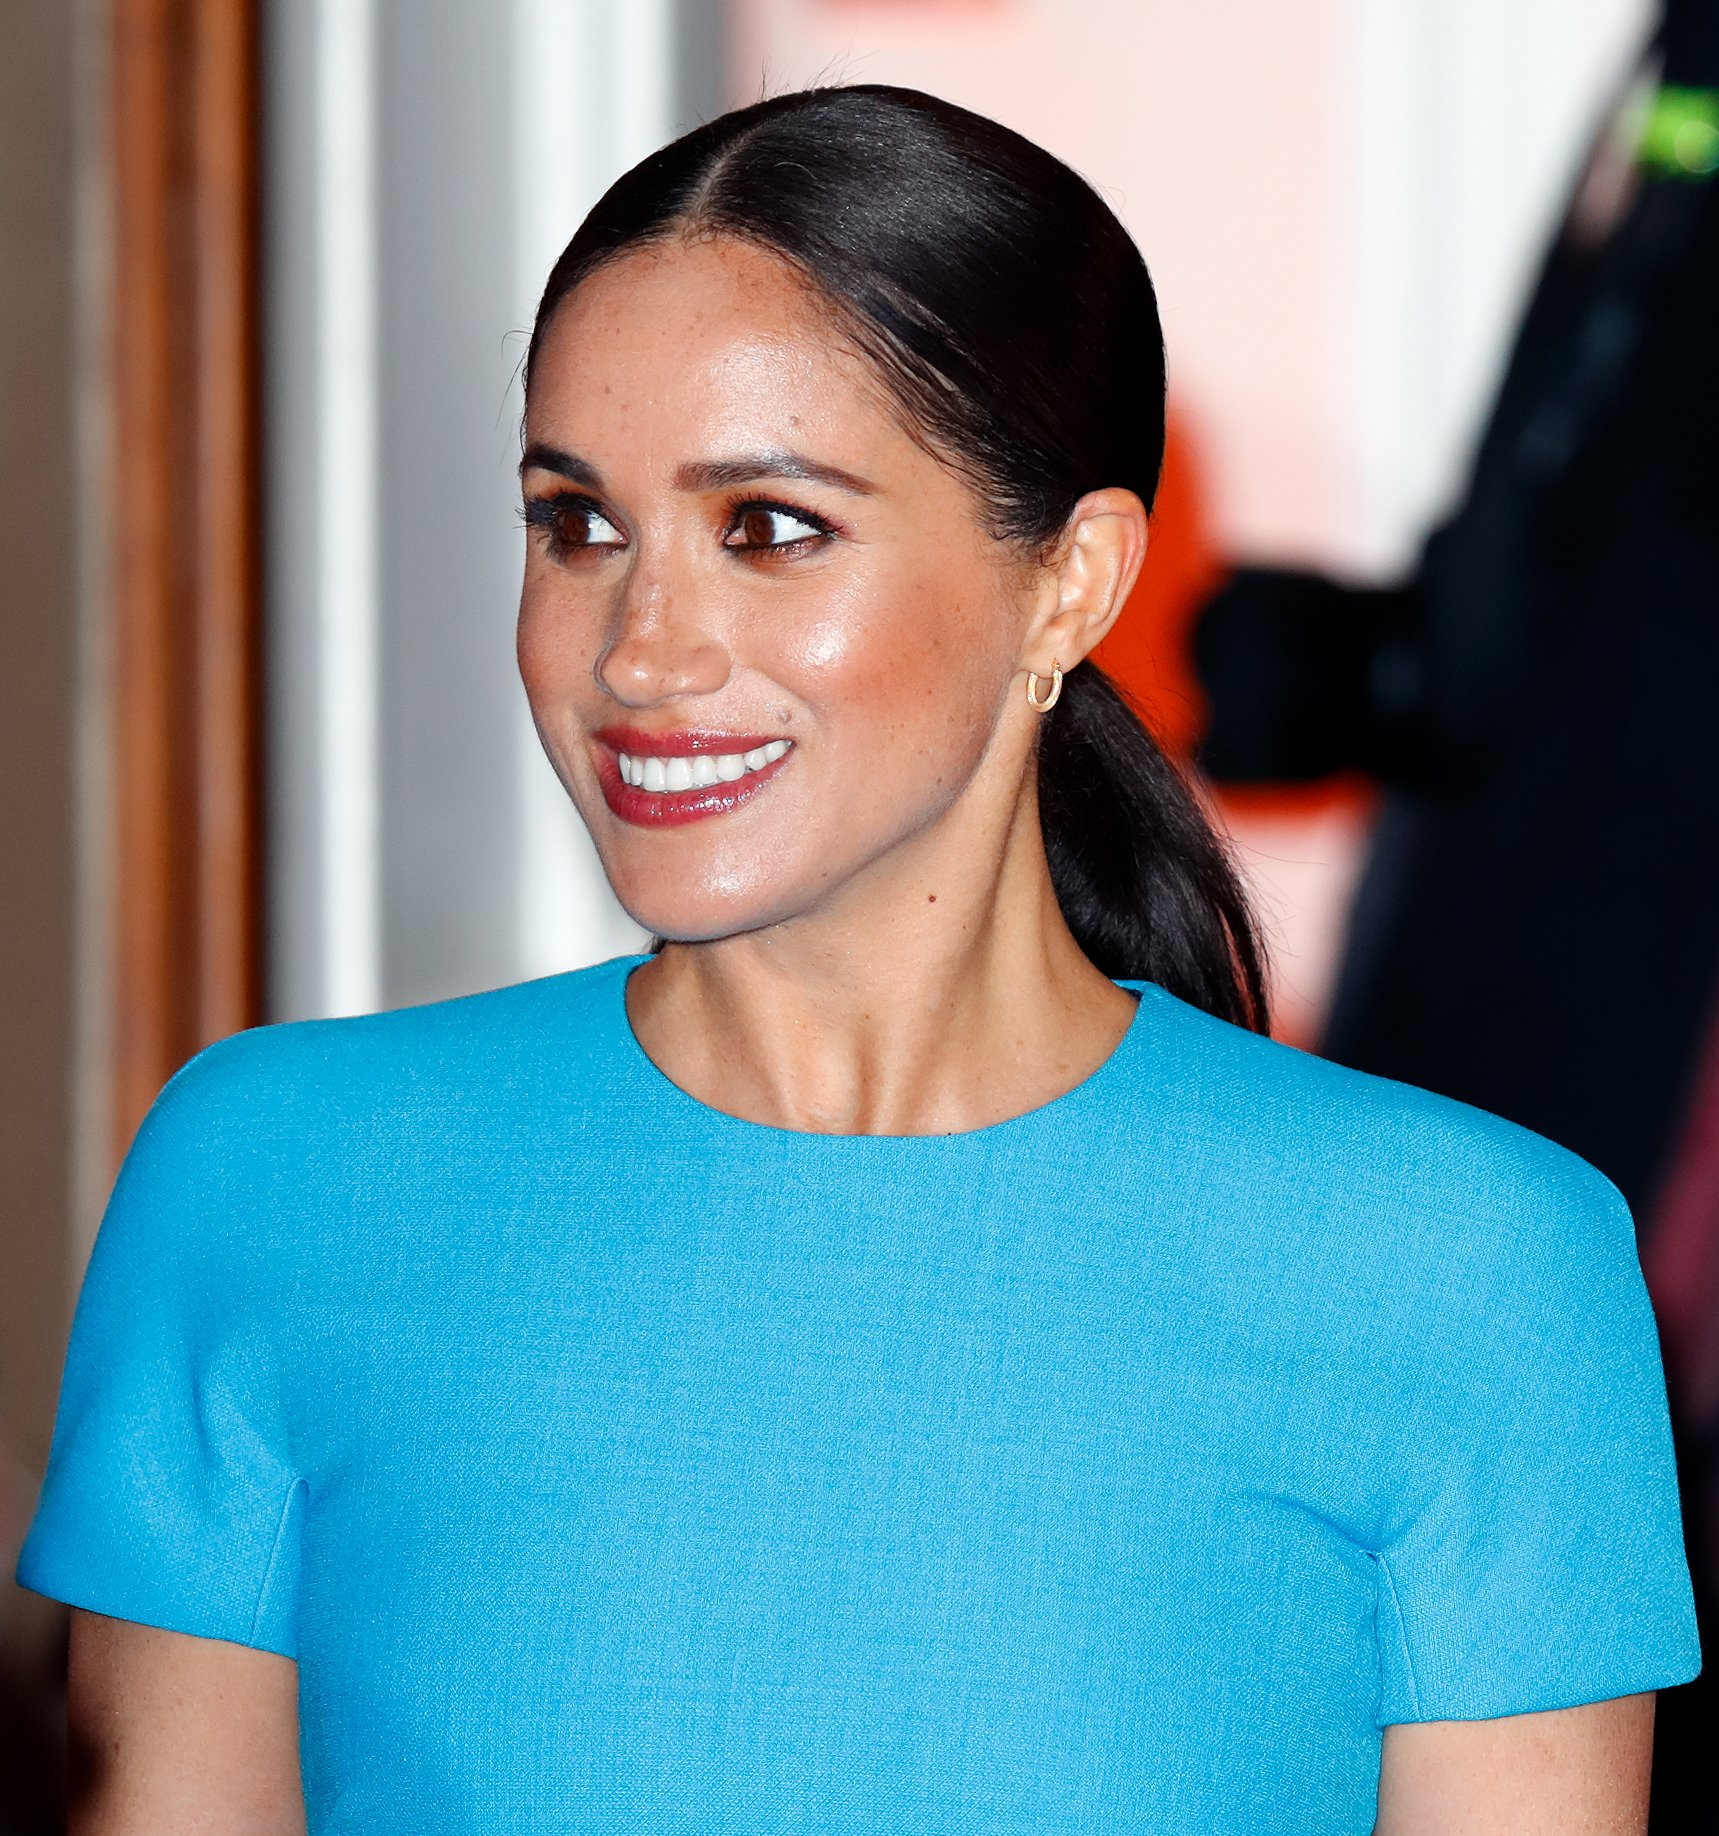 Meghan Markle attends The Endeavour Fund Awards at Mansion House on March 5, 2020 in London, England   Photo: Getty Images